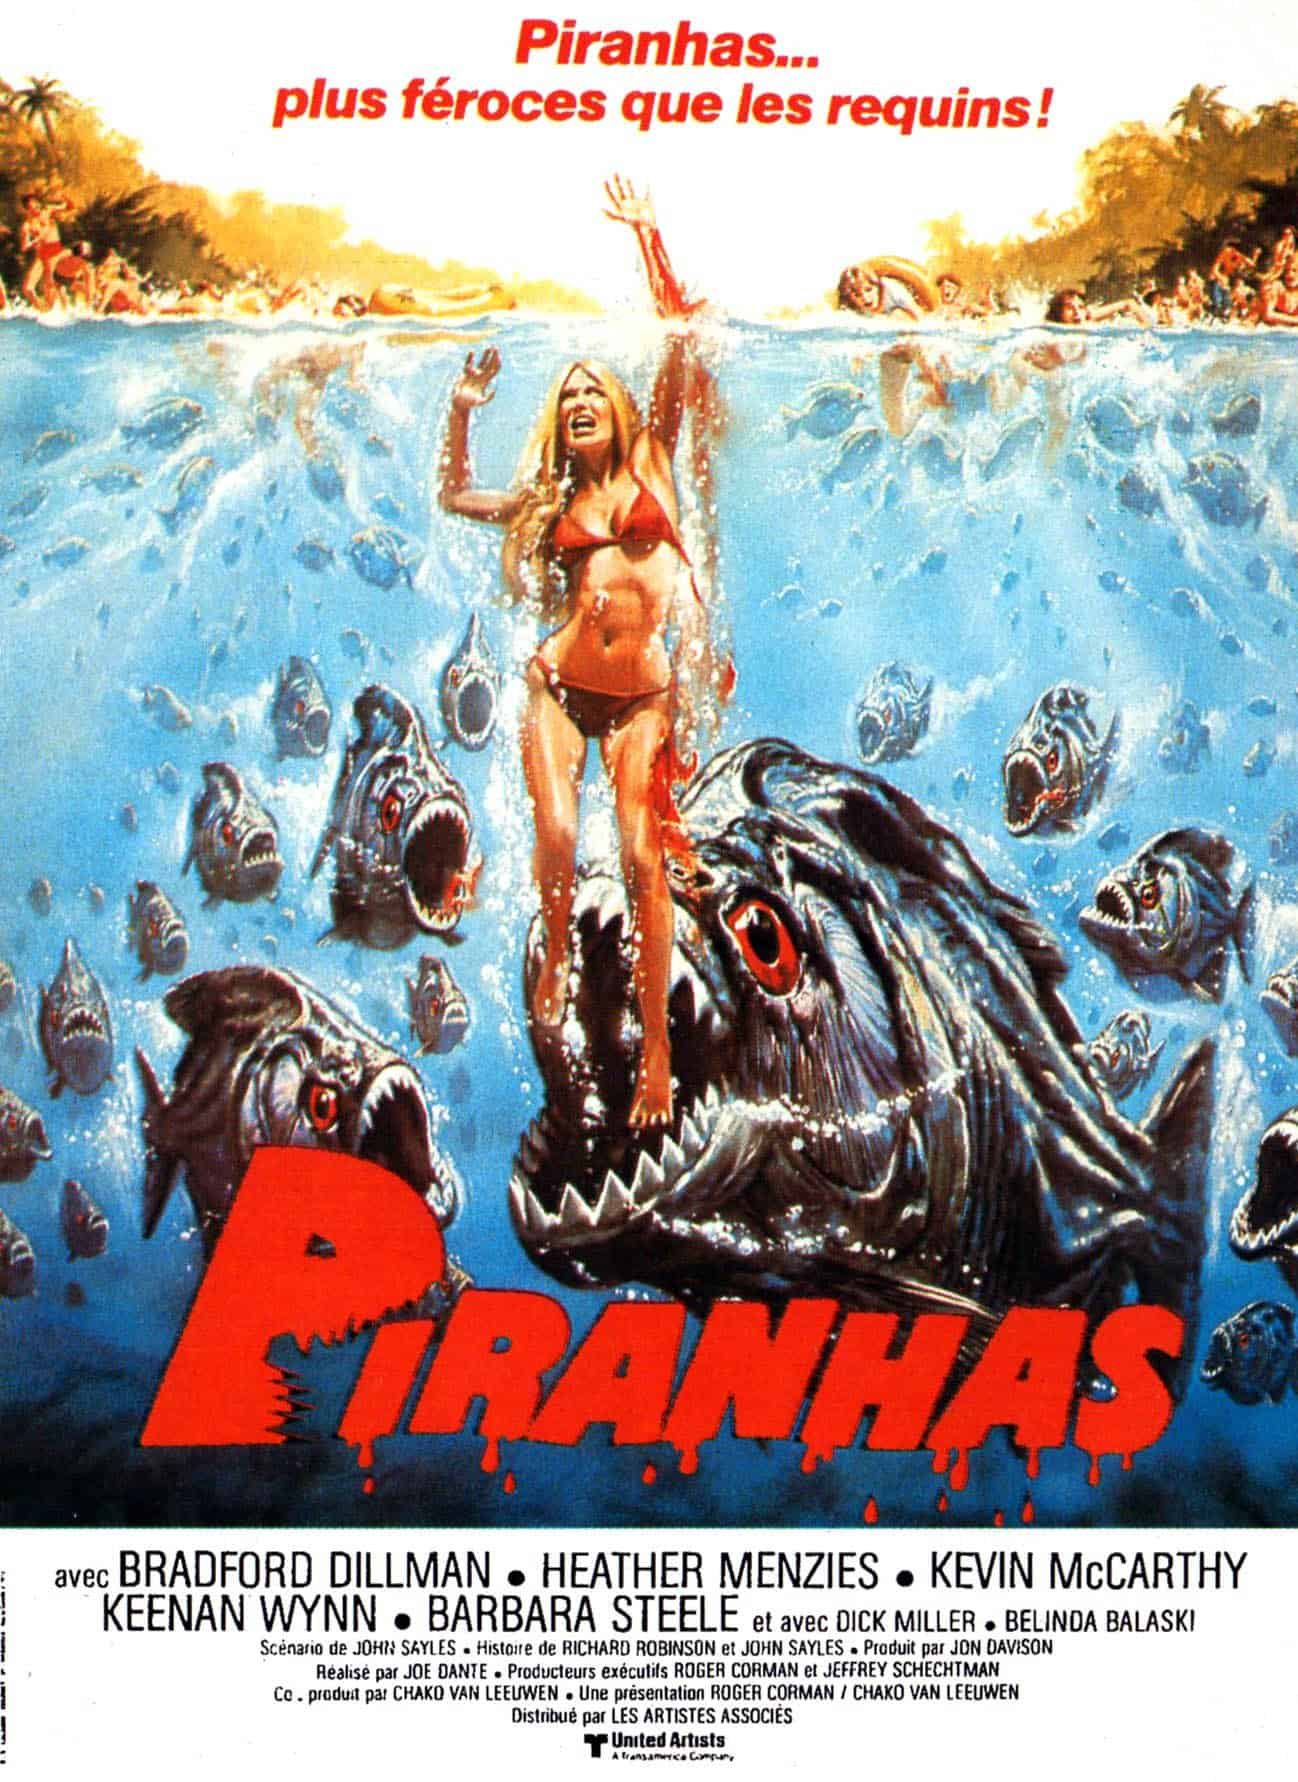 Mike's Review: Piranha (1978)